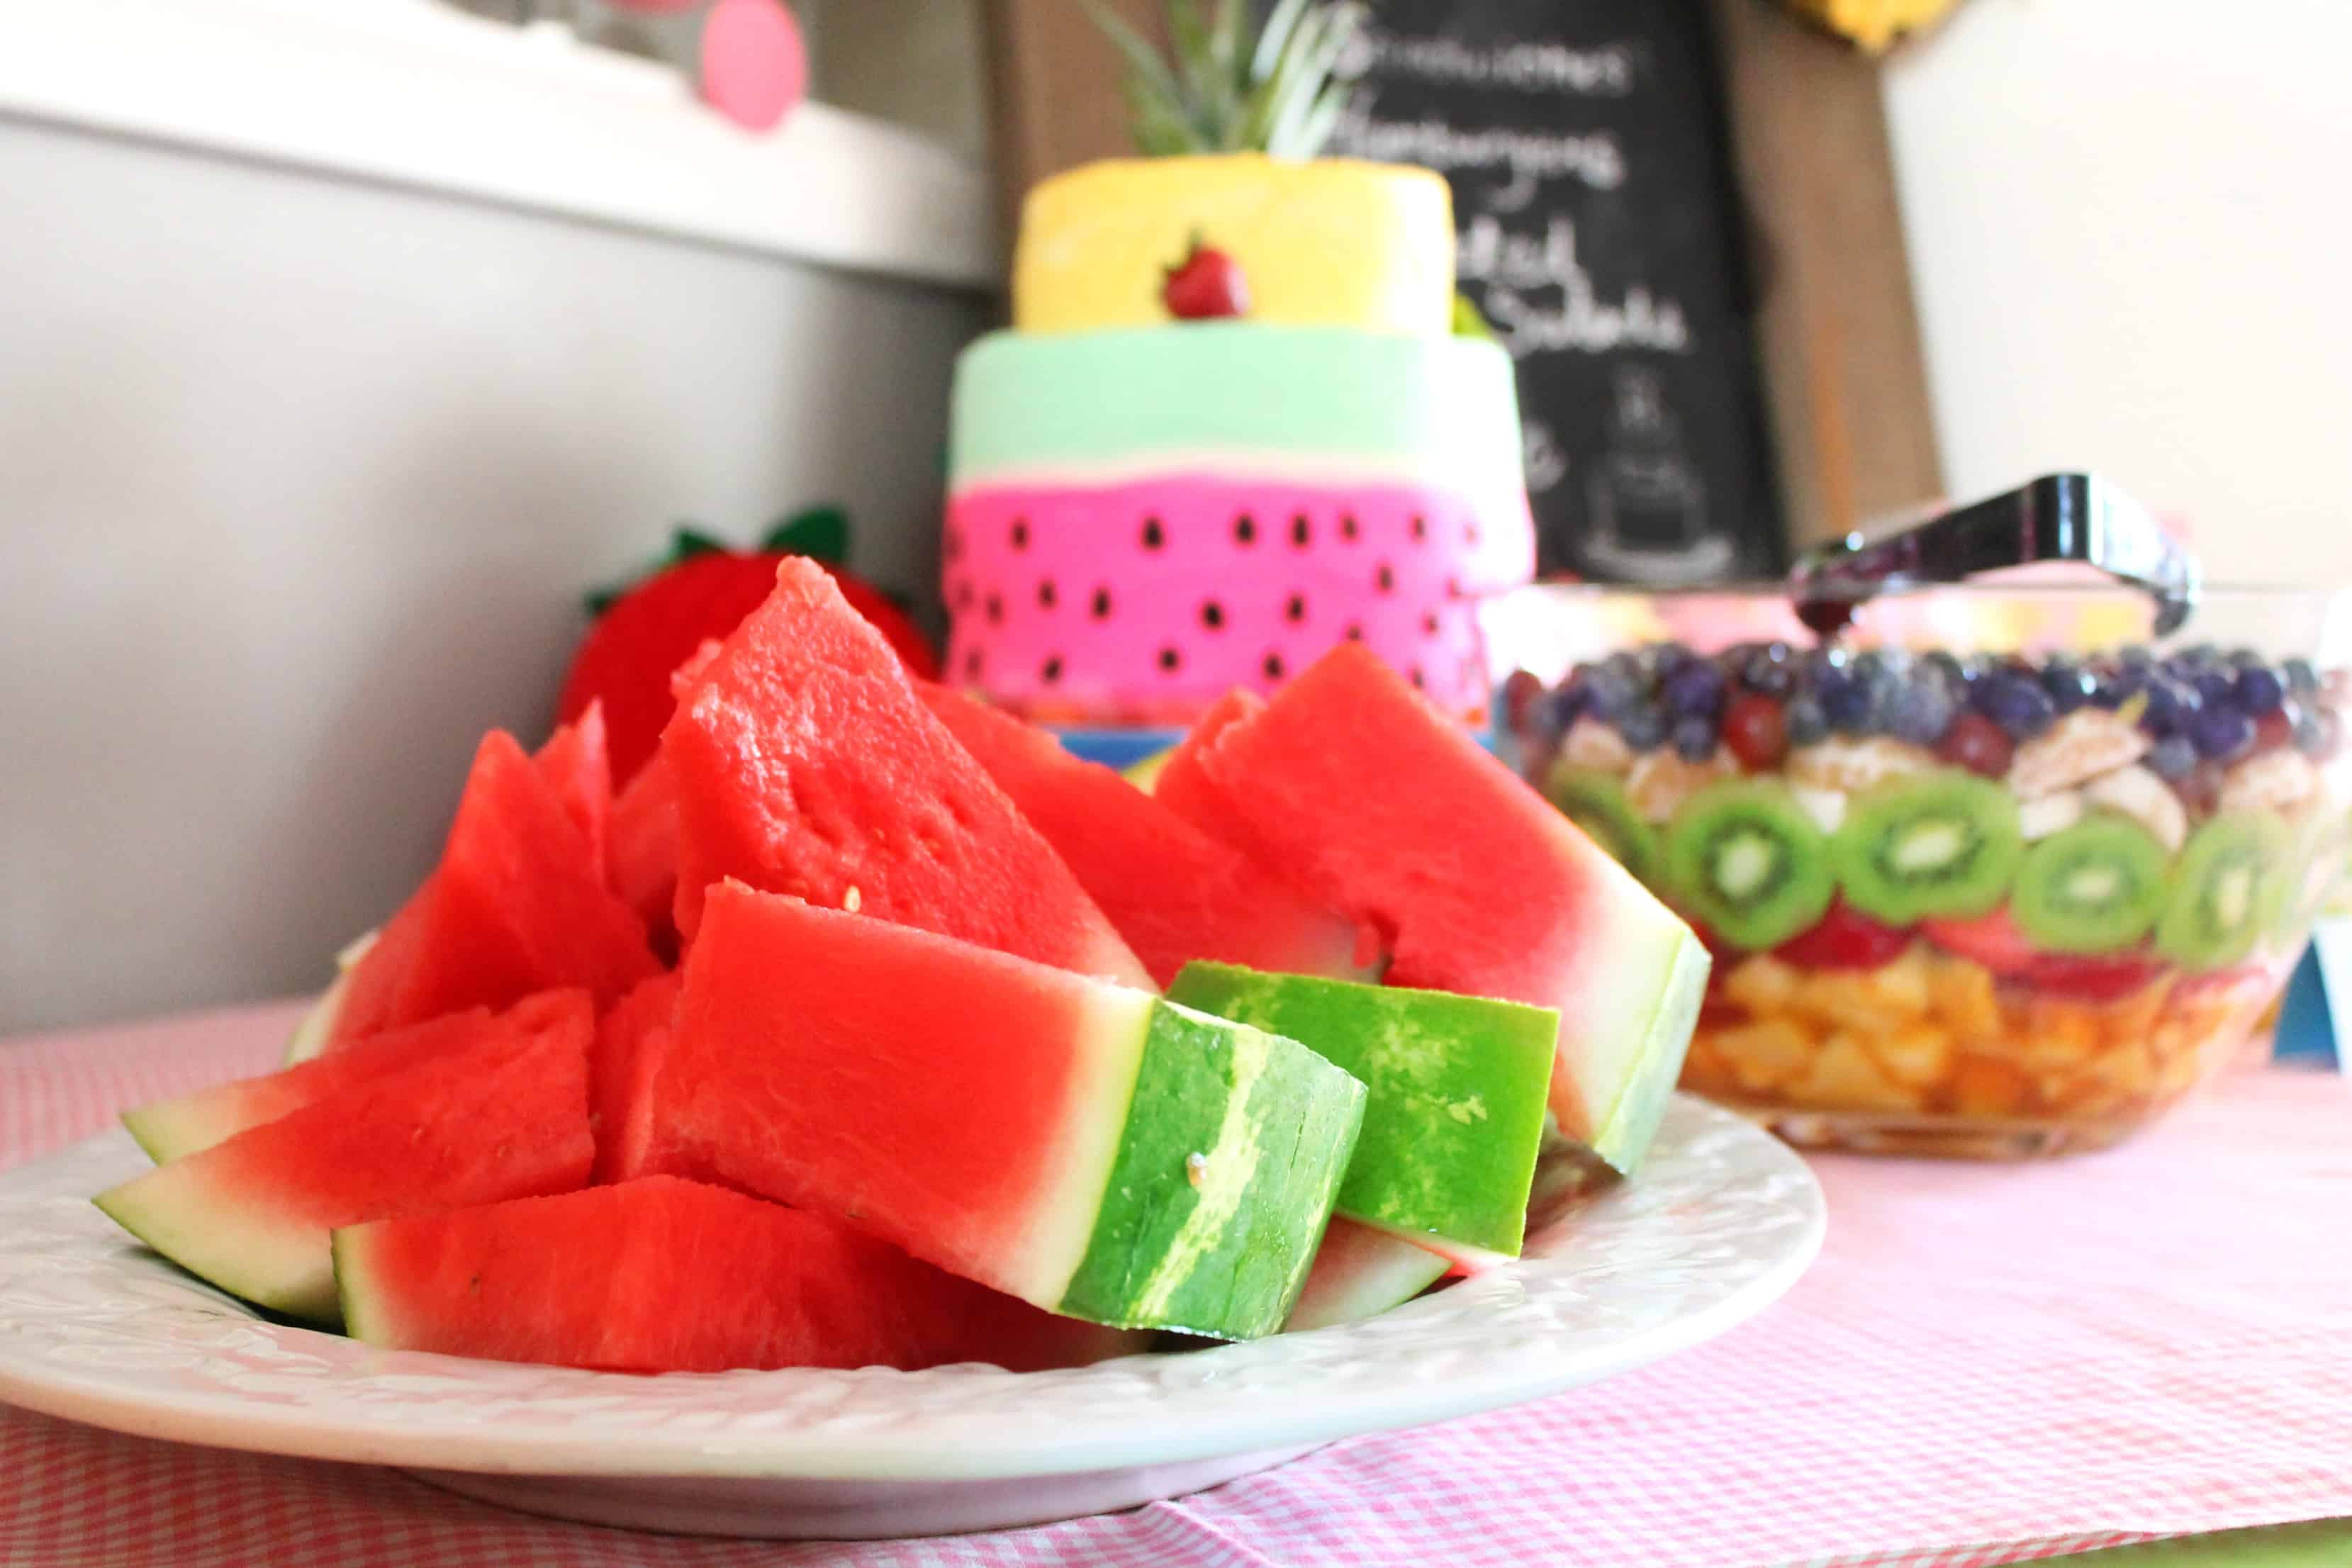 Two-tti fruity birthday, birthday theme, two year old birthday, girls birthday, summer birthday, fruit, fruity, tootie fruity, birthday party, birthday,